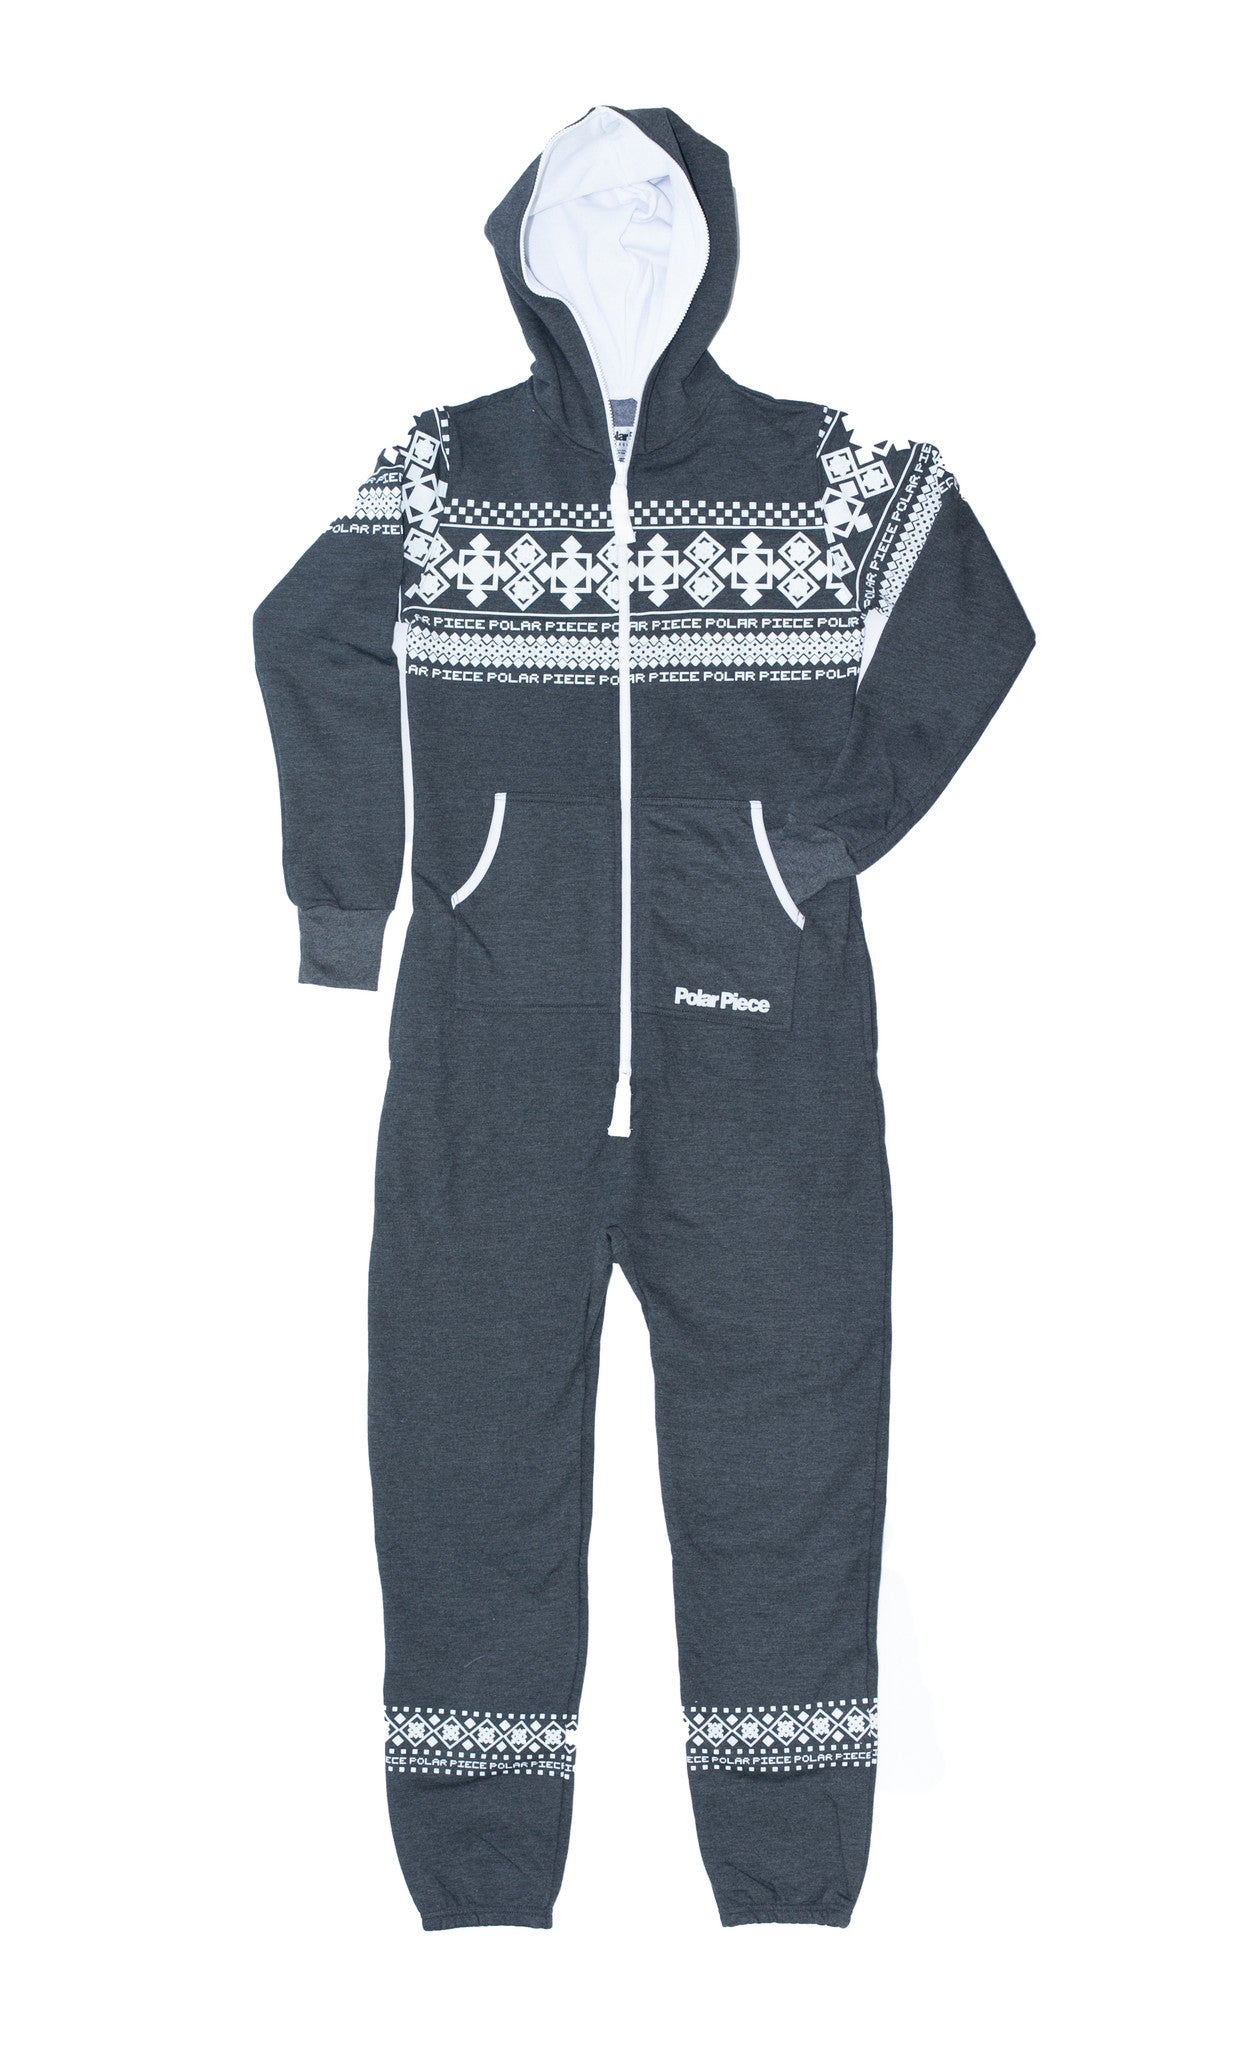 Charcoal PolarPiece with Arctic Print - PolarPiece | Simply Canadian